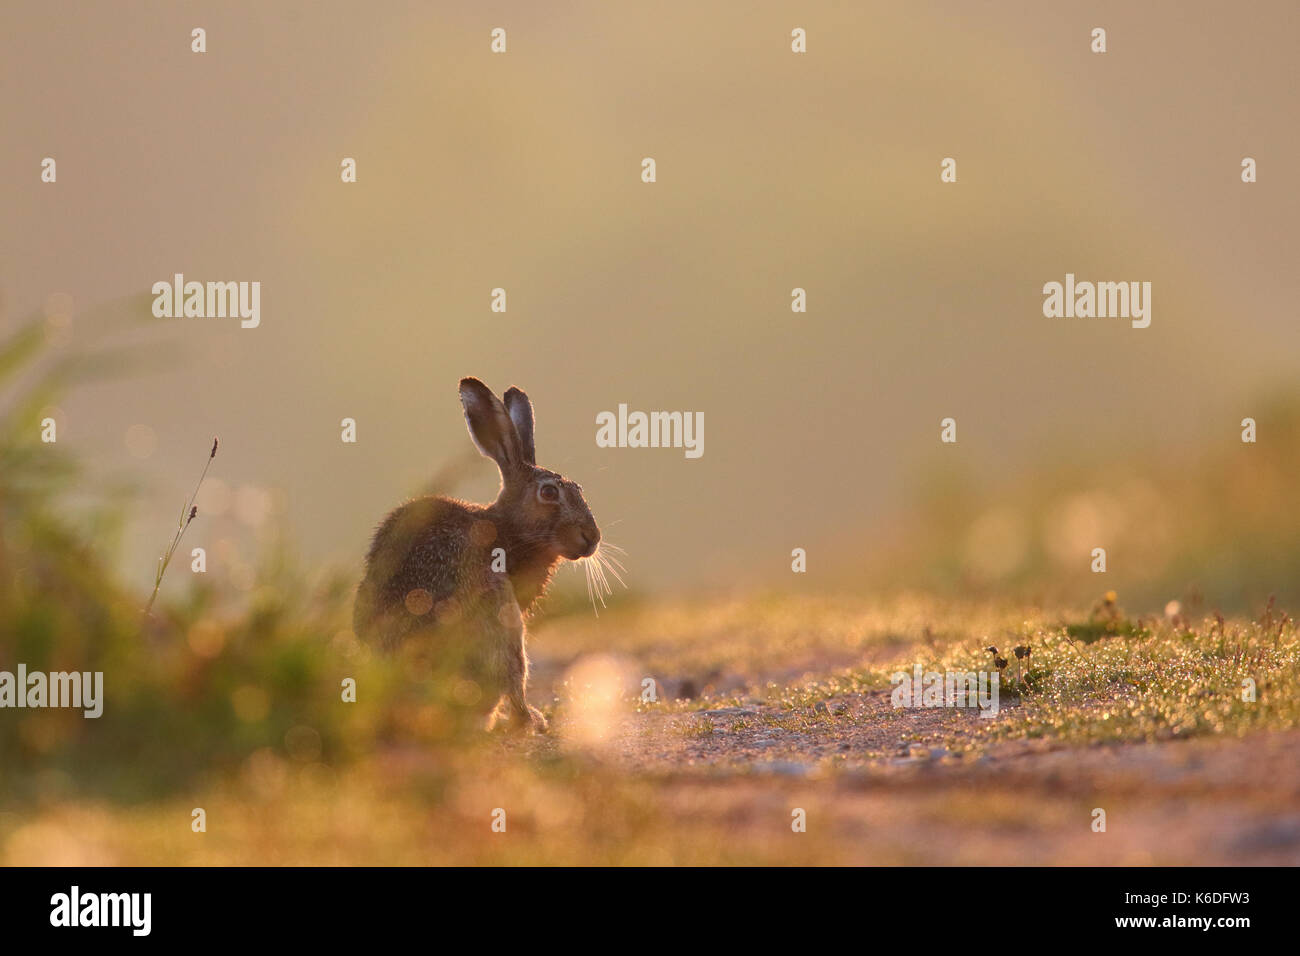 European Brown Hare (Lepus europaeus) in early morning first light. Europe - Stock Image